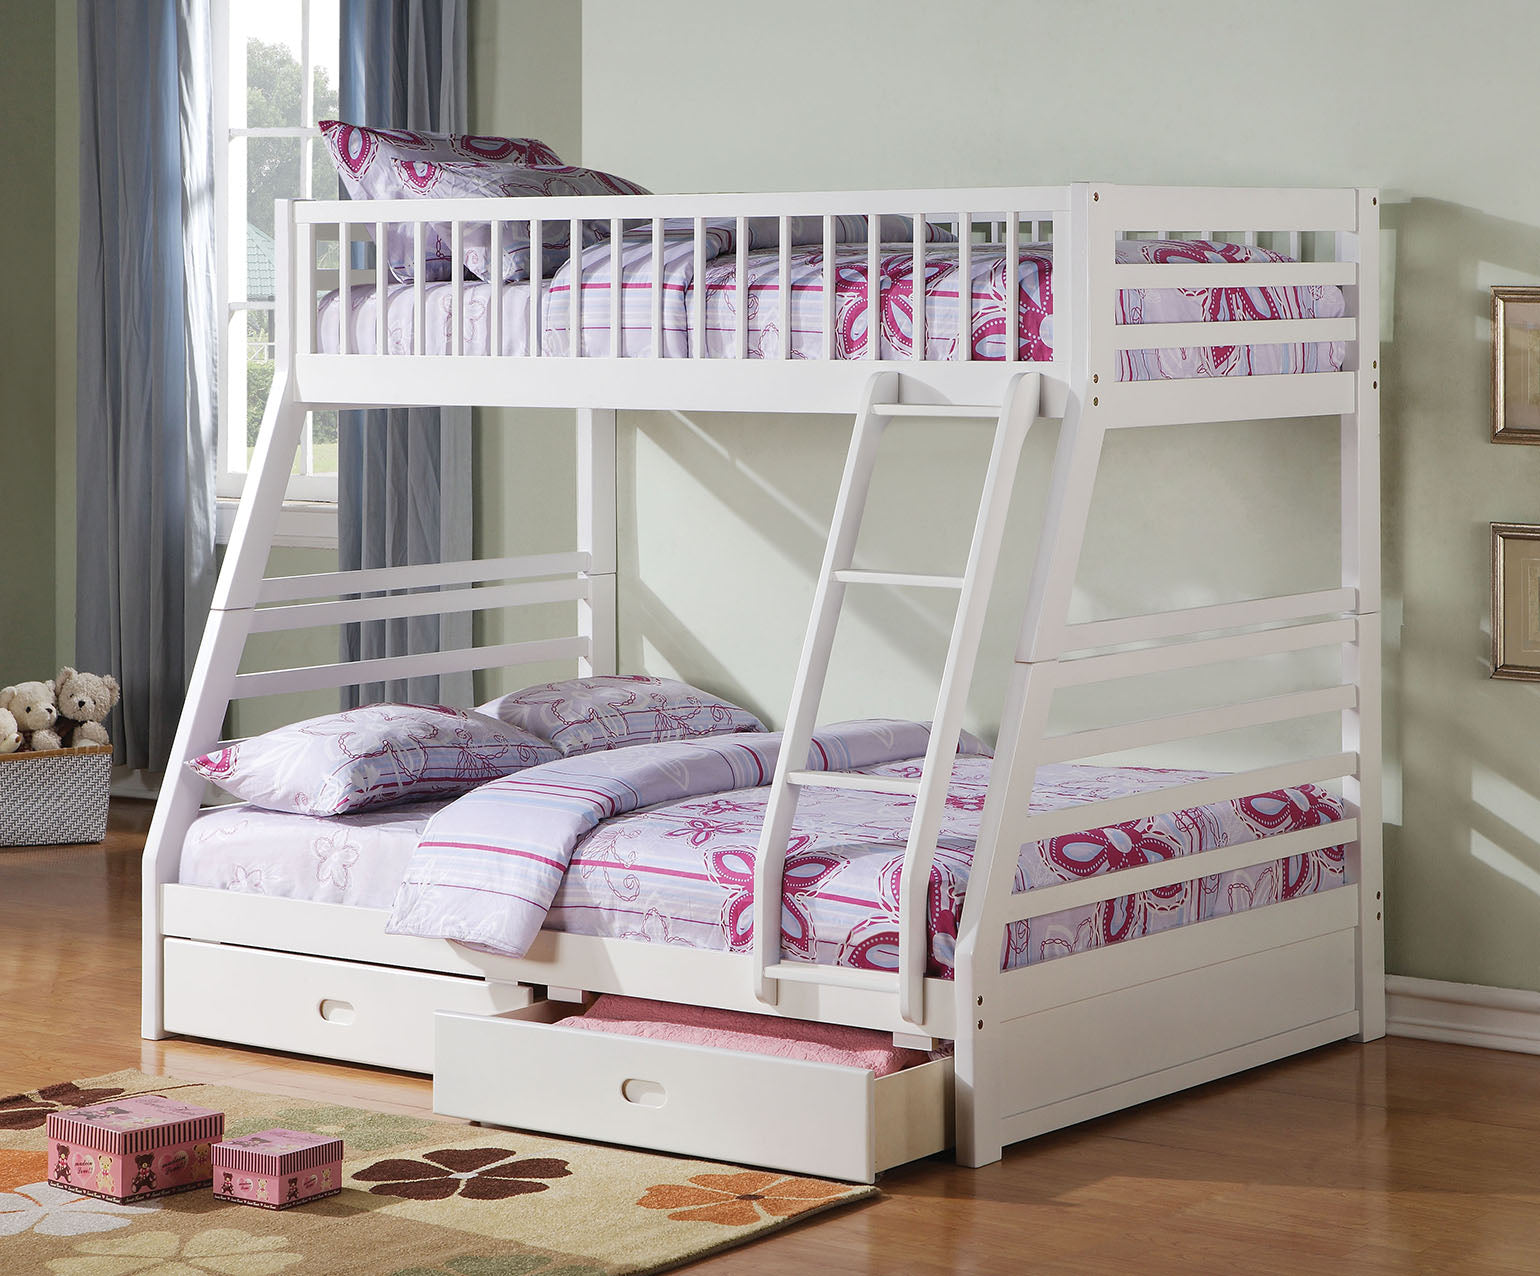 "79"" X 57"" X 65"" White Pine Wood Twin Over Full Bunk Bed"